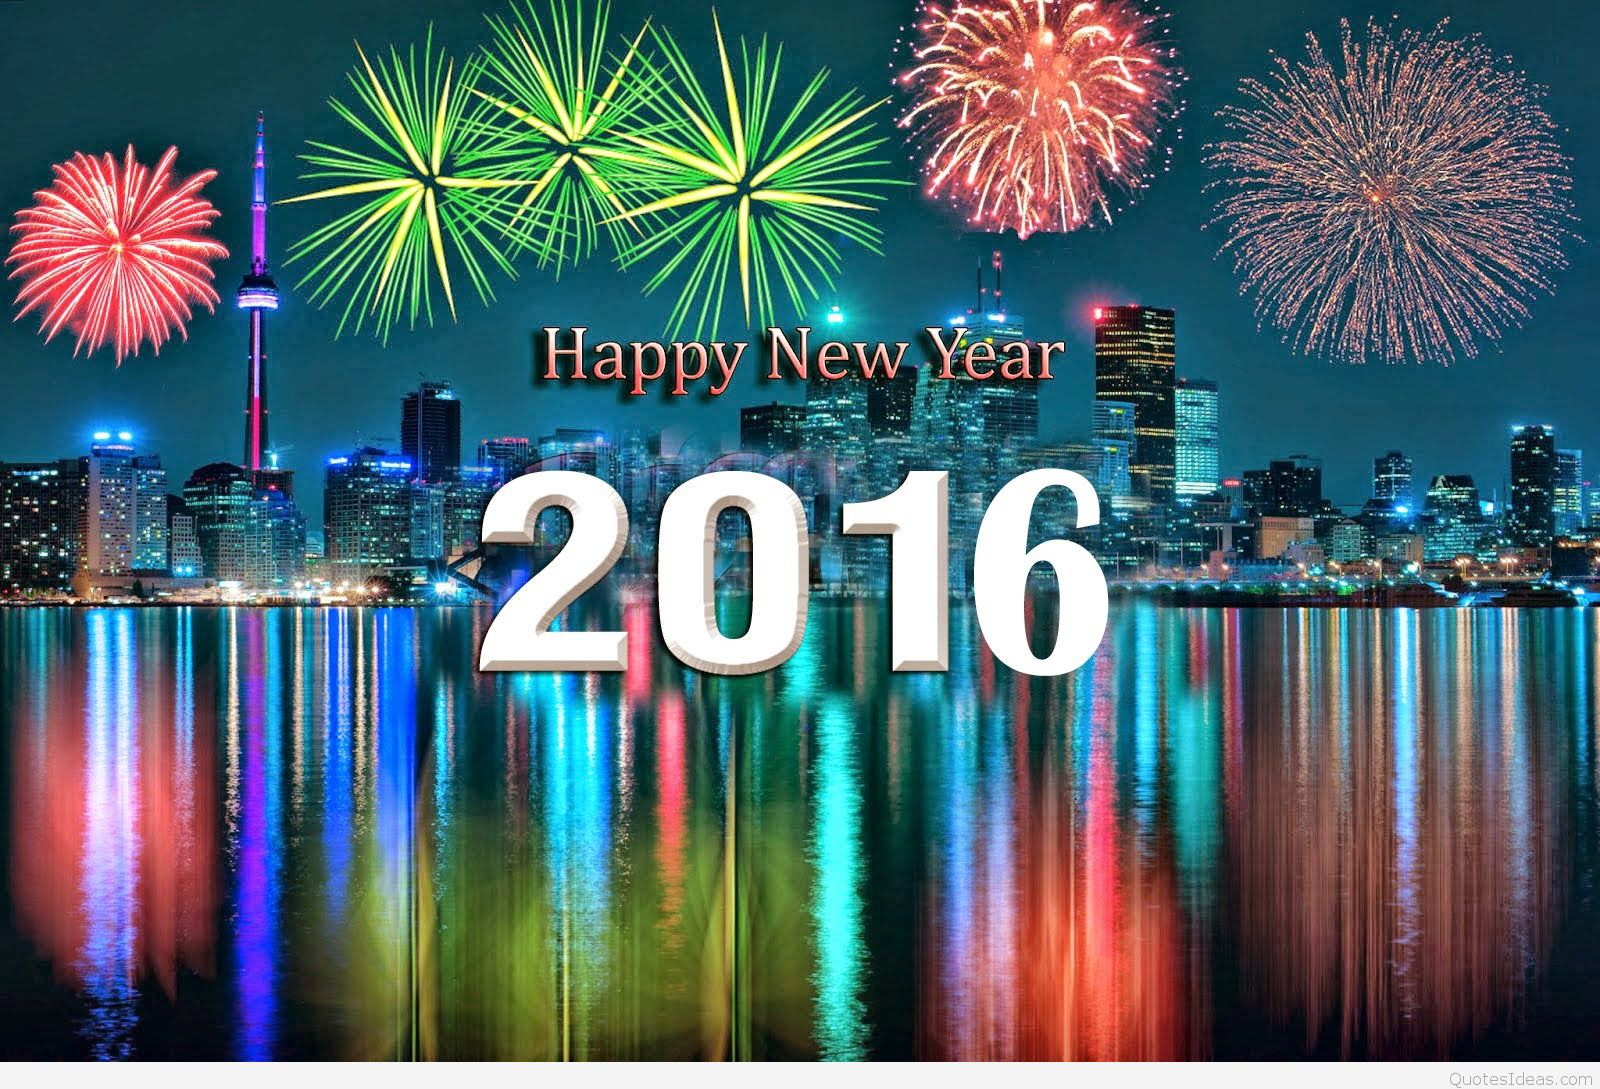 wallpapers happy new year hd 1600x1089